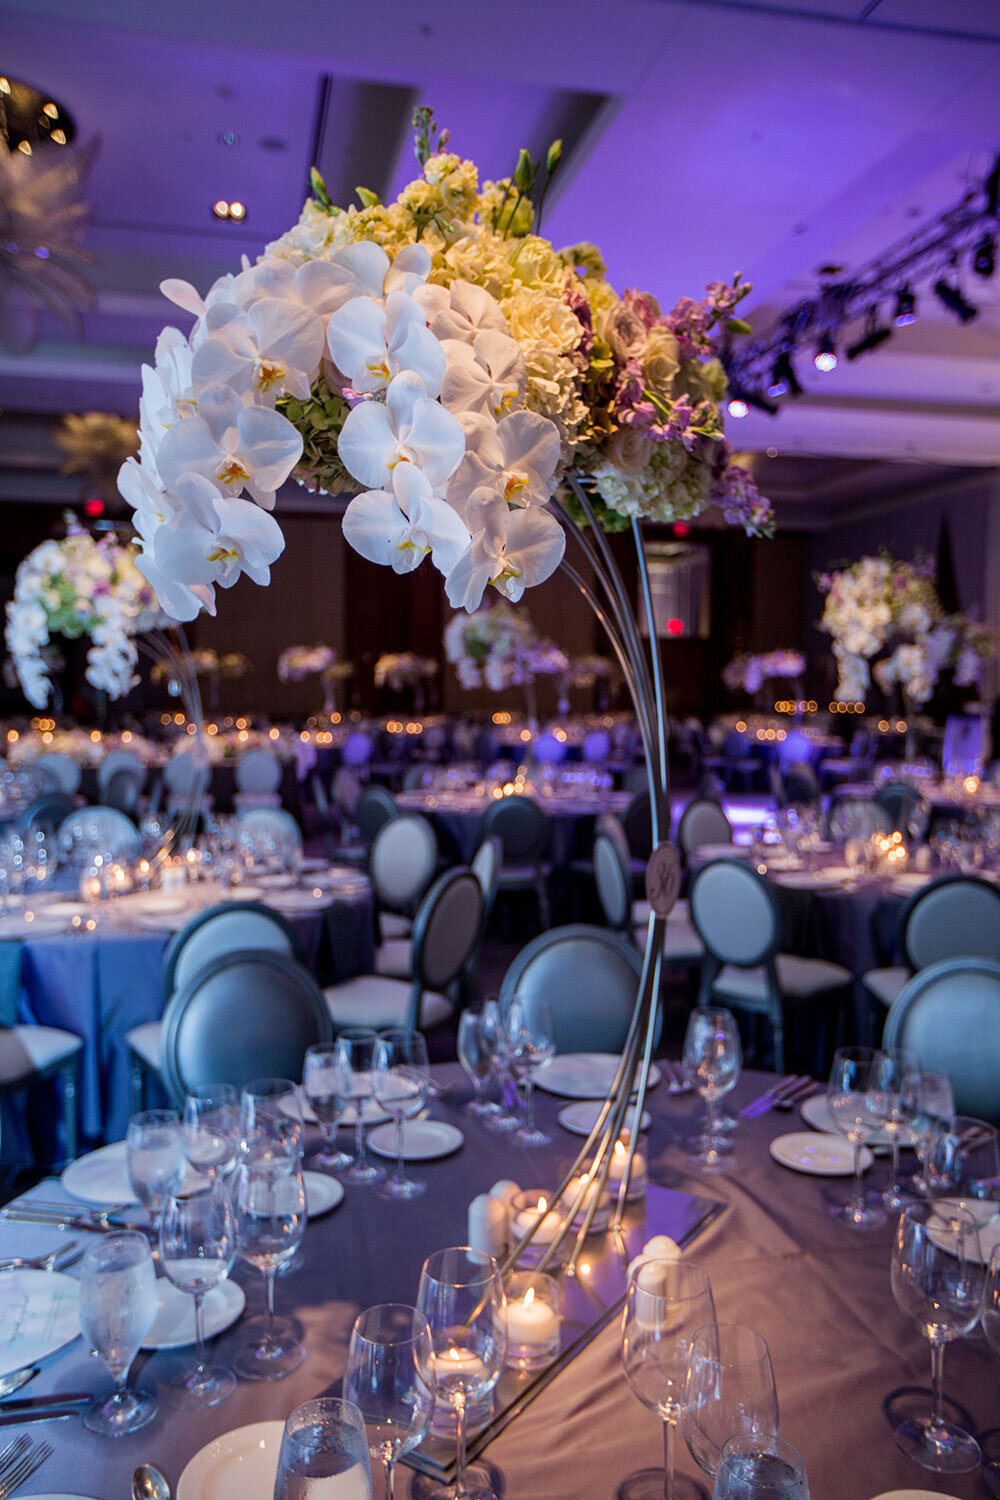 Paras-Events-Modern-Blush-Crystal-Chandeliers-Reception-Backdrop-Centrepieces-Ritz-Carlton-Toronto-2.jpg